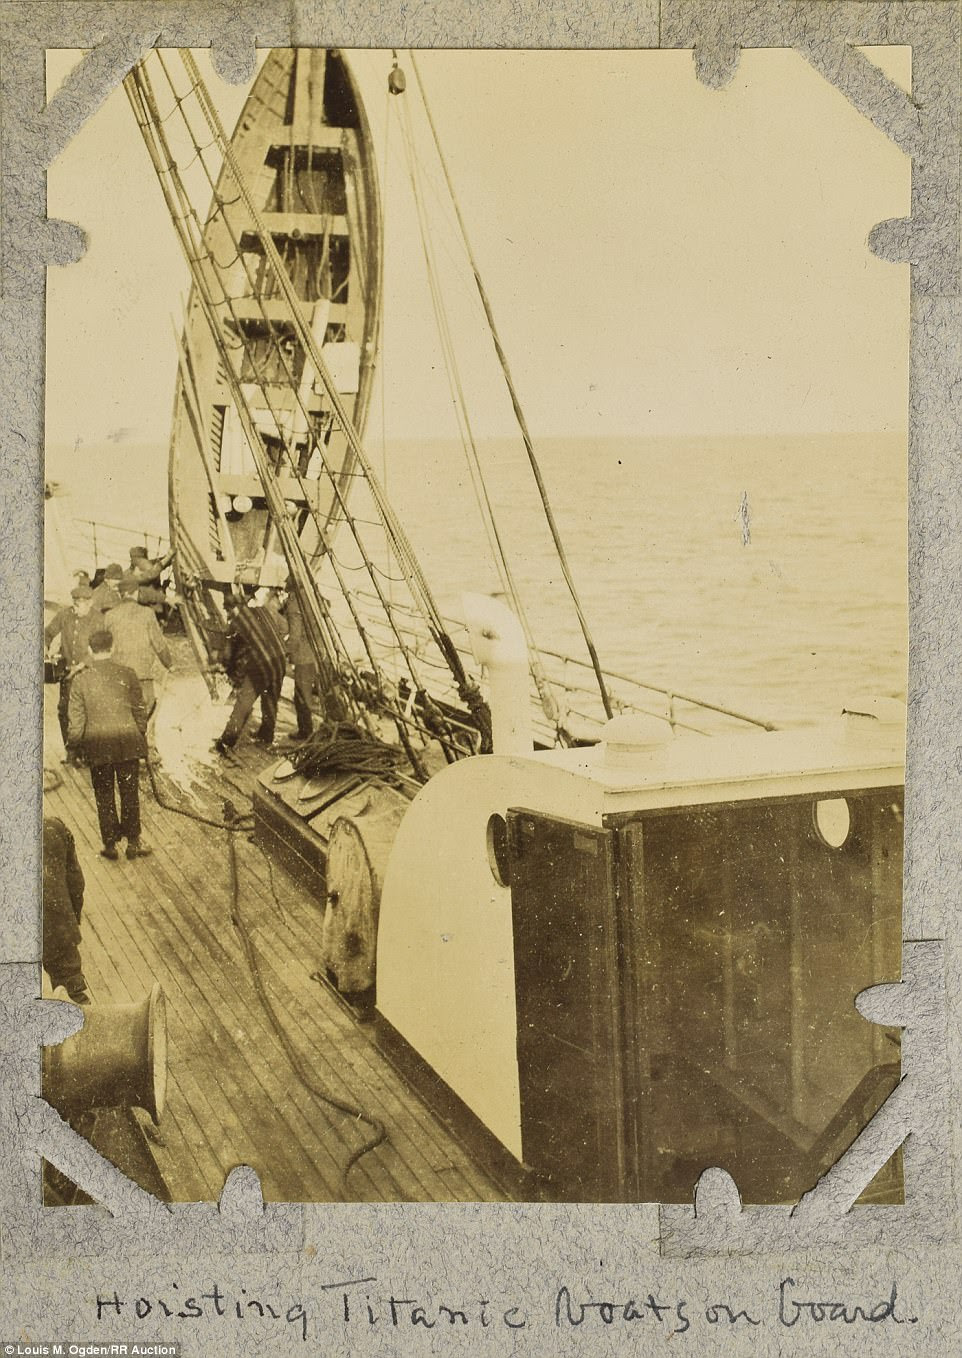 Mr Ogden bought a new camera for the trip, and used it to document the Titanic rescue